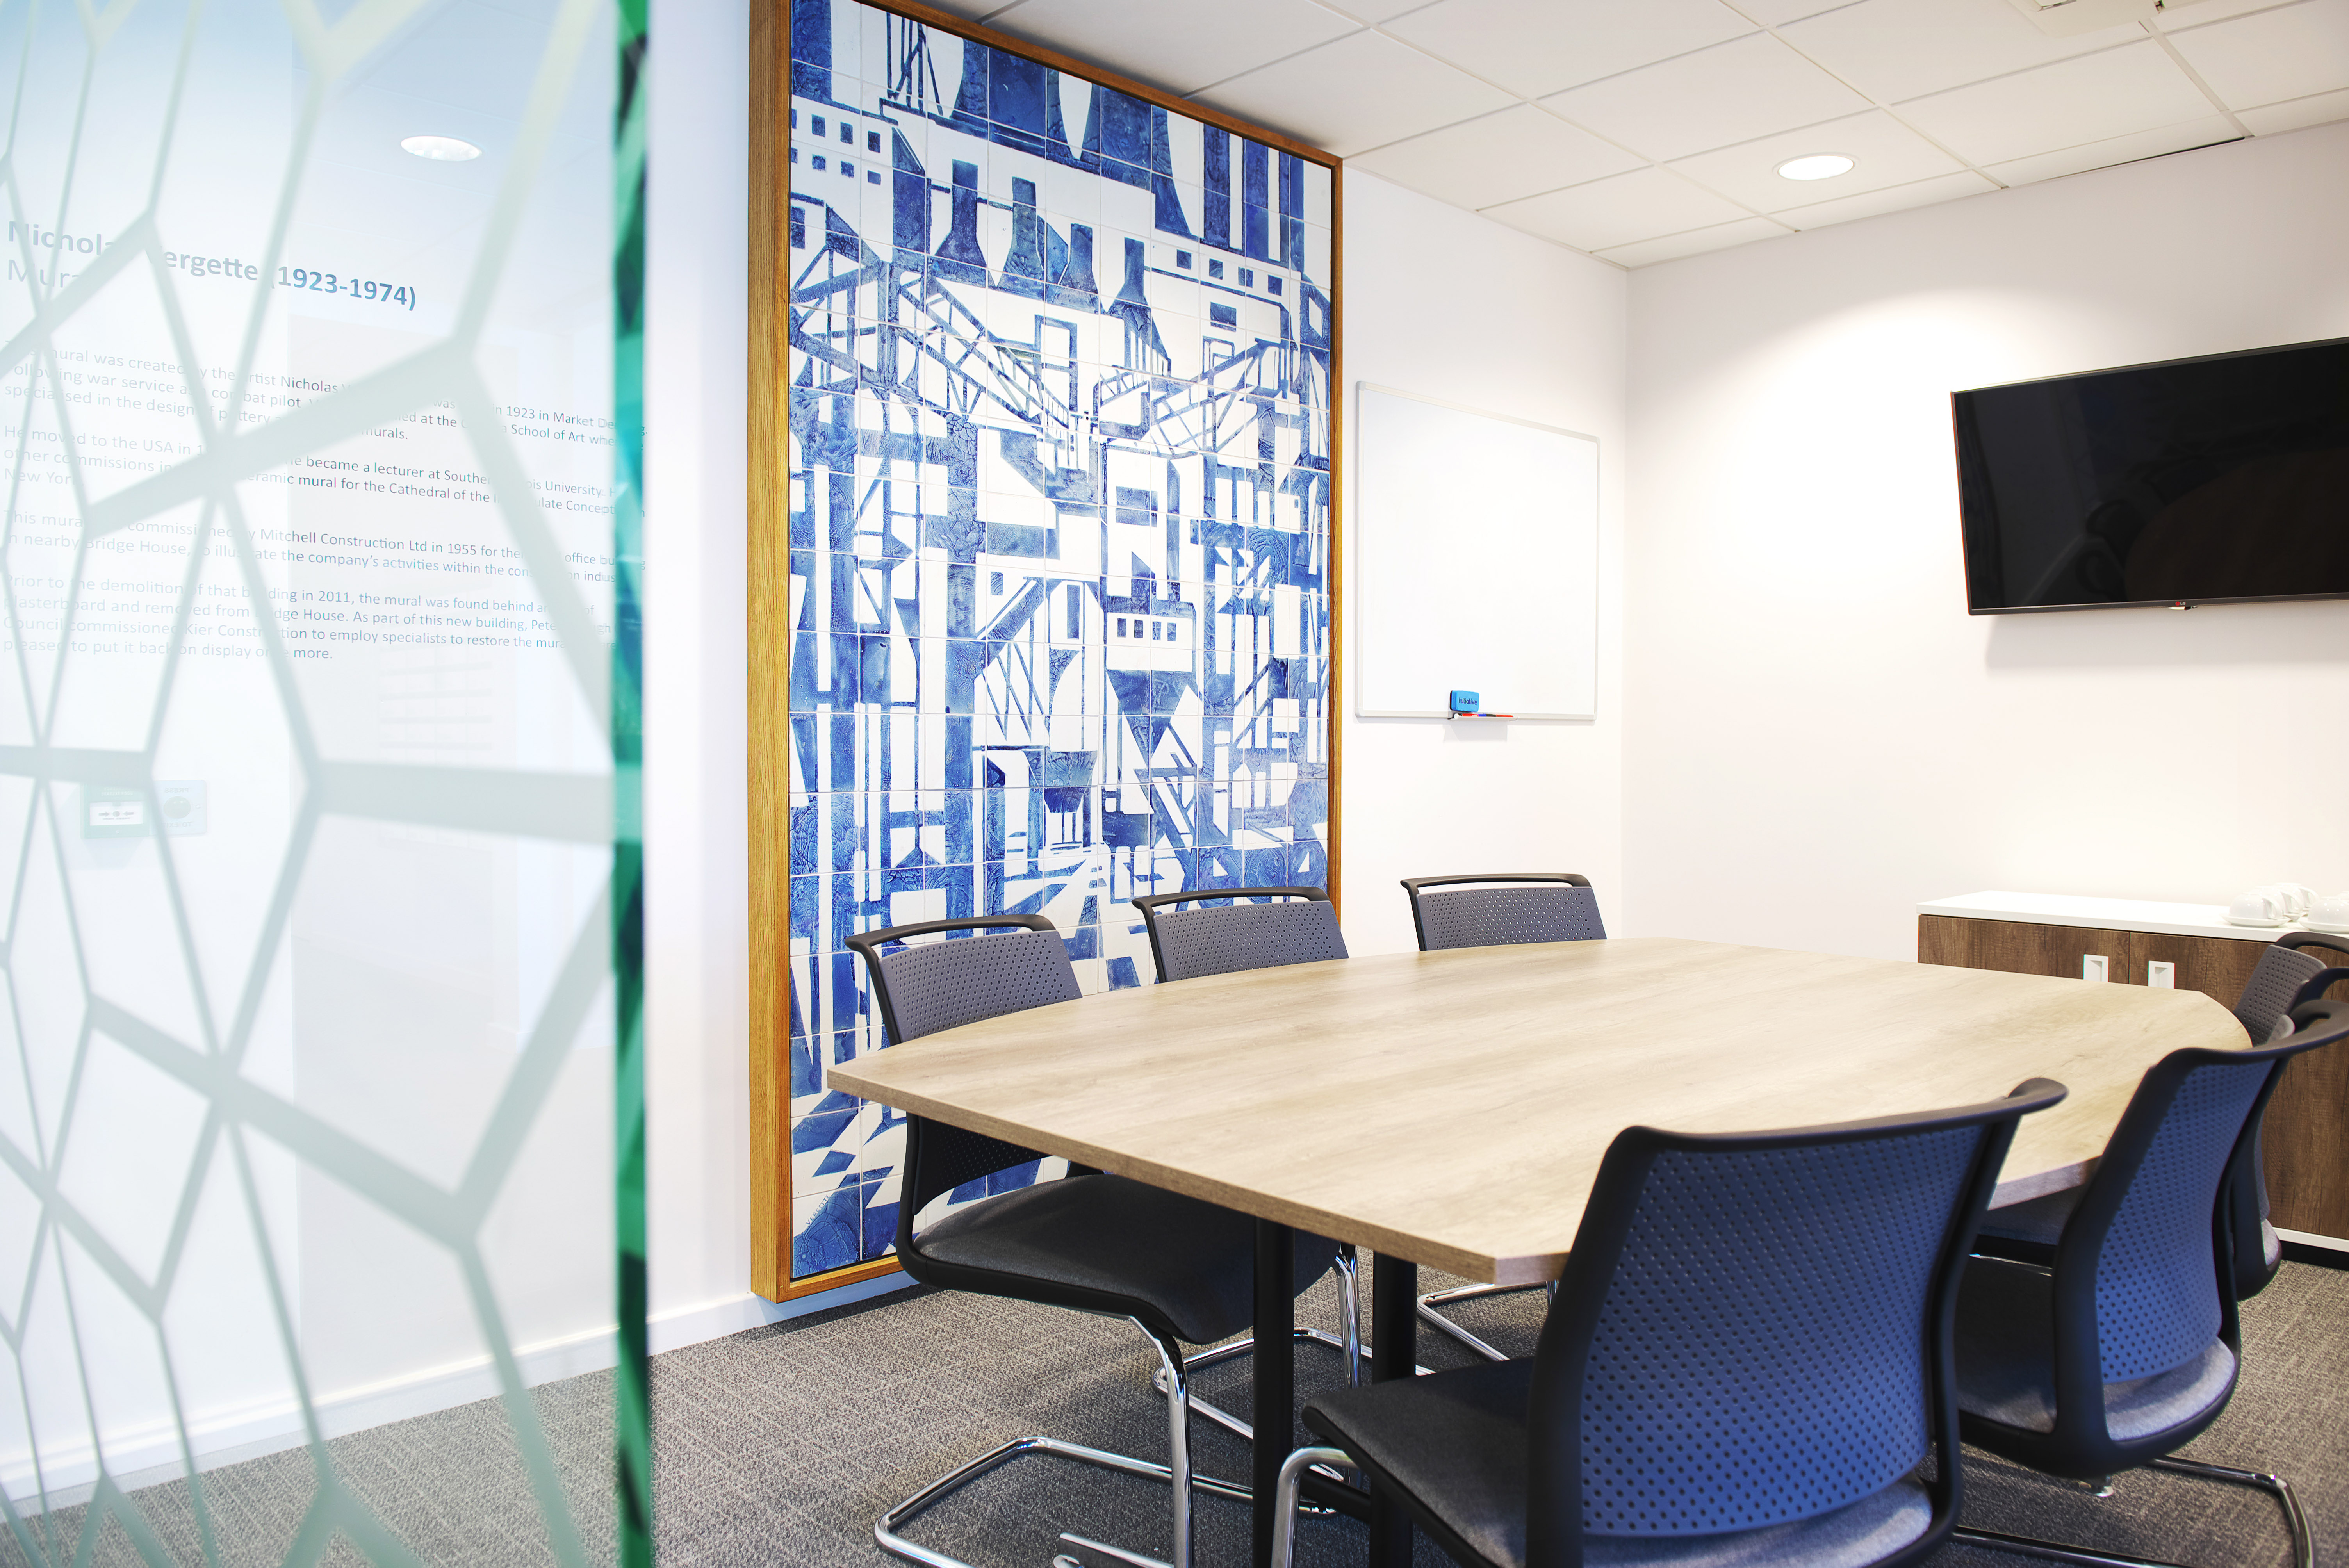 Book Free Event And Meeting Room Space At Allia Future